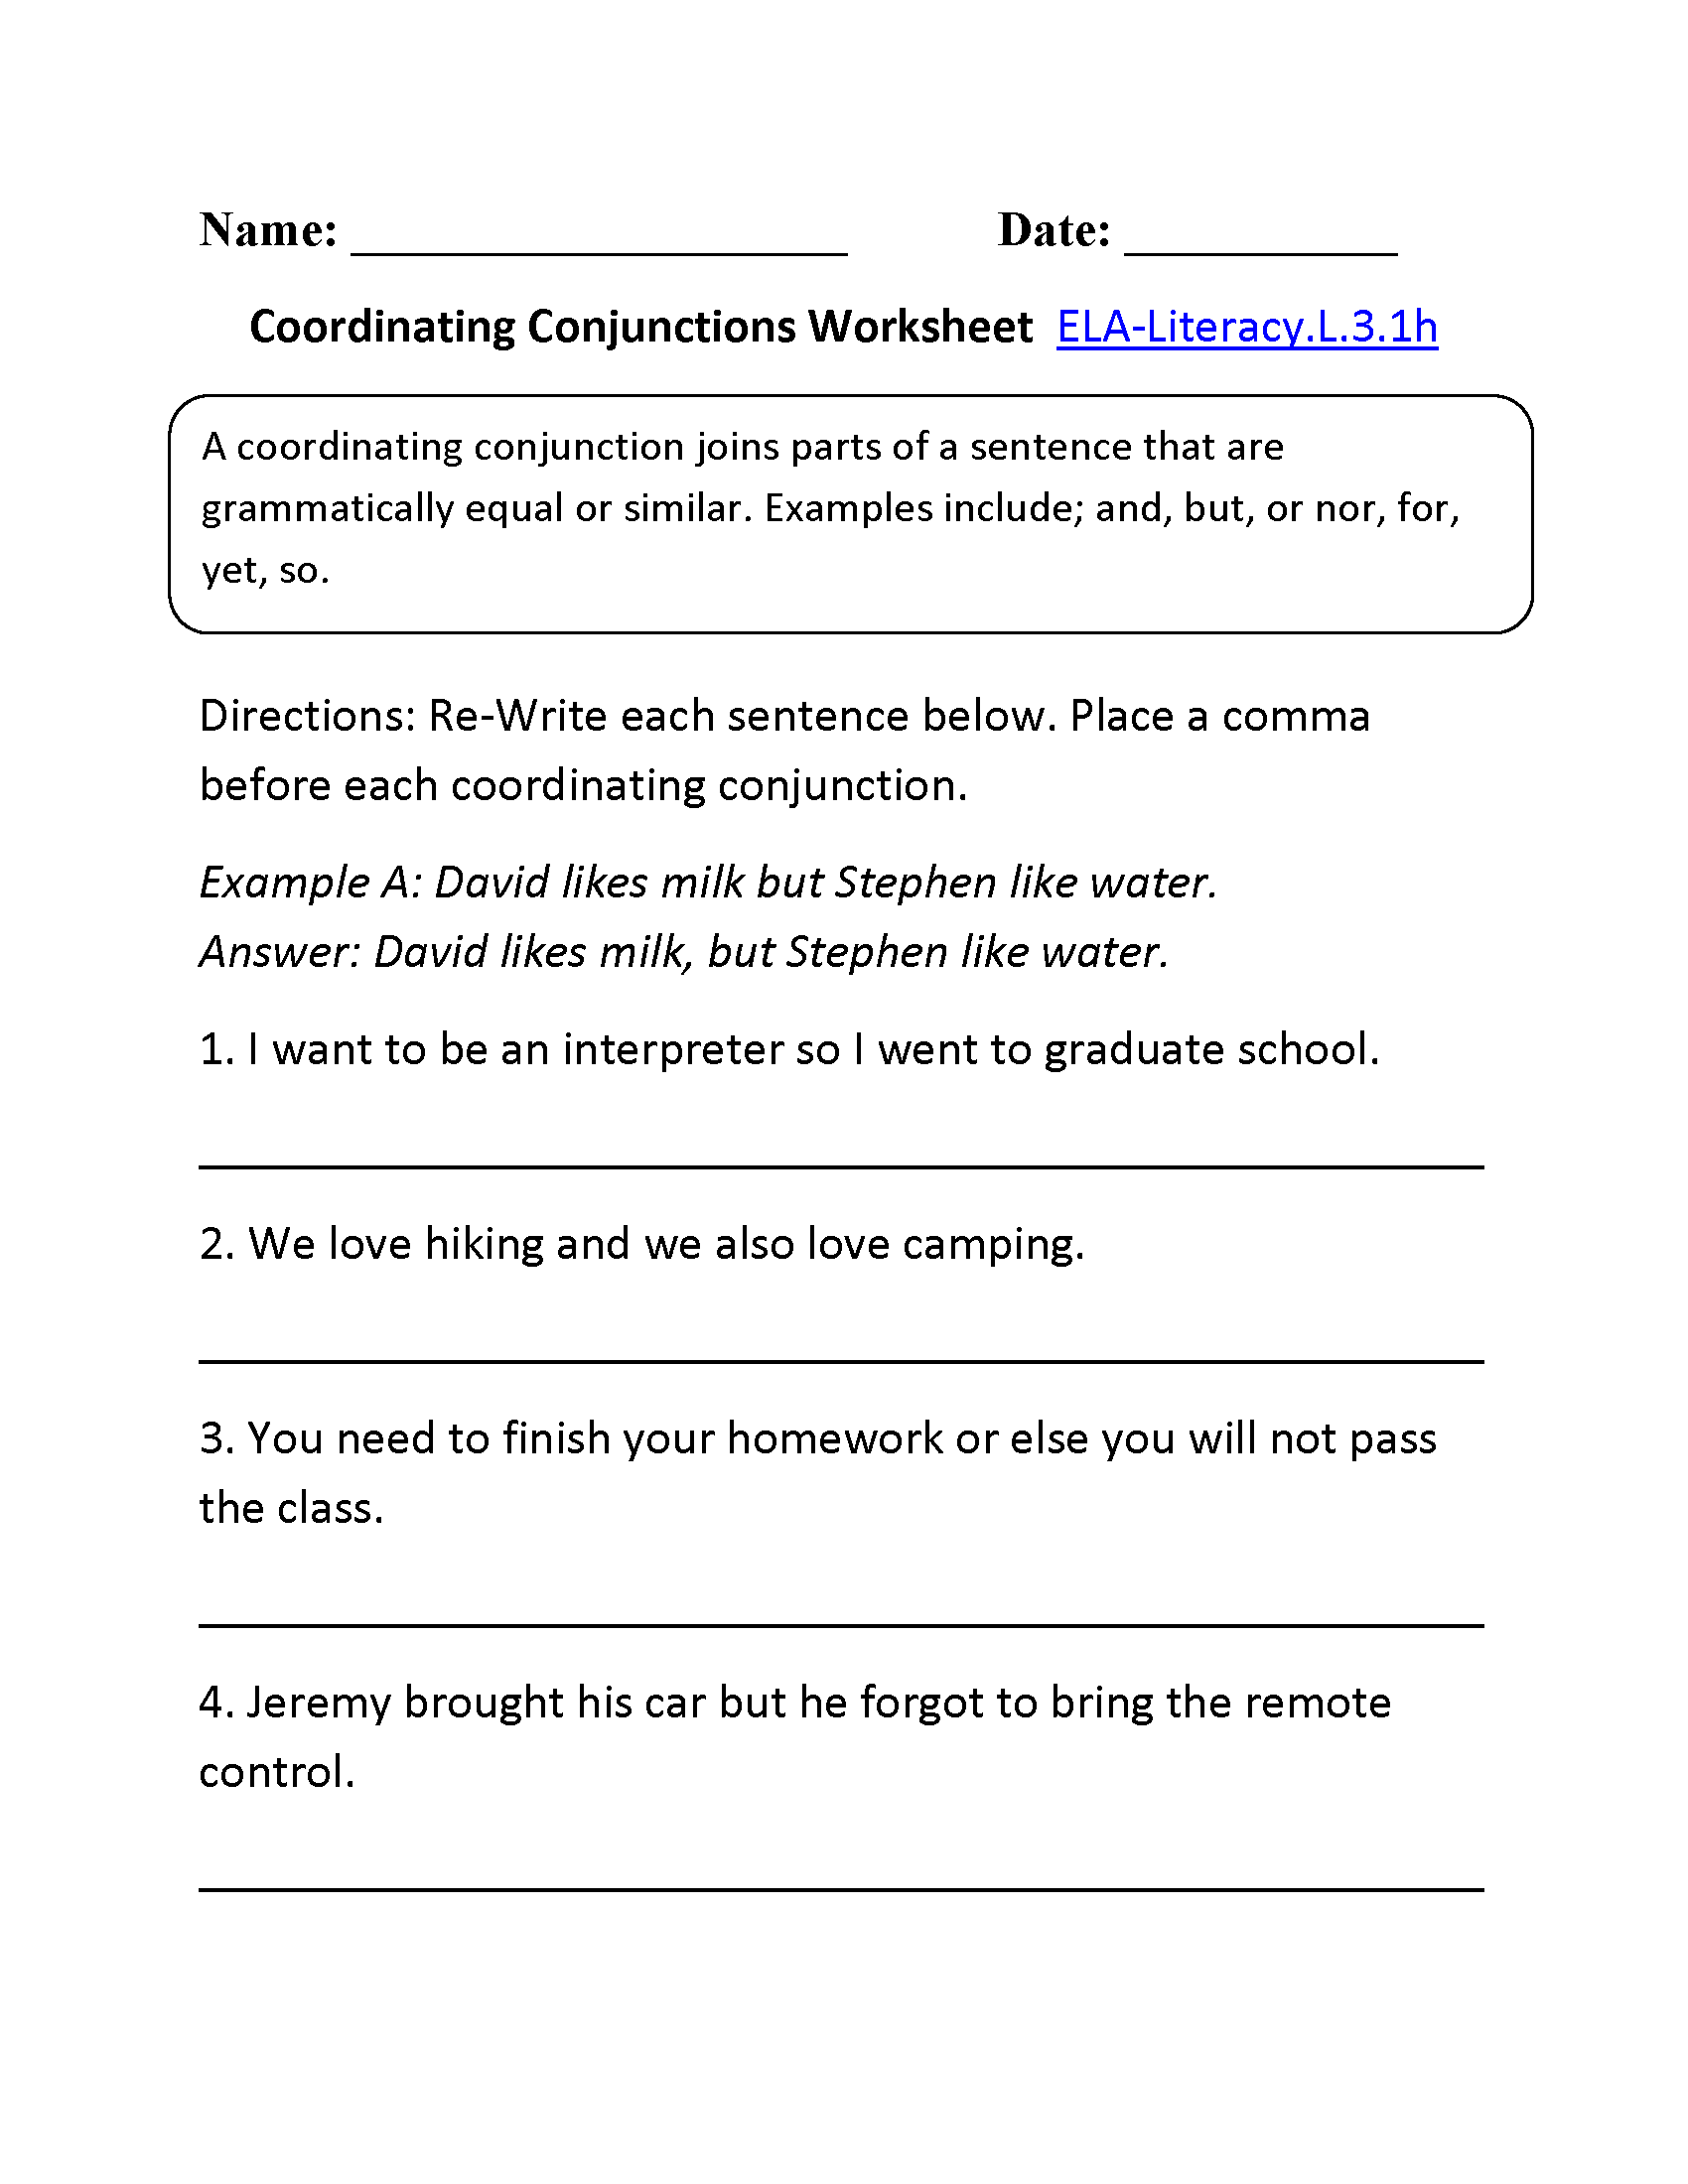 Worksheets Conjunctions Worksheet coordinating conjunctions worksheet 1 l 3 pinterest 1